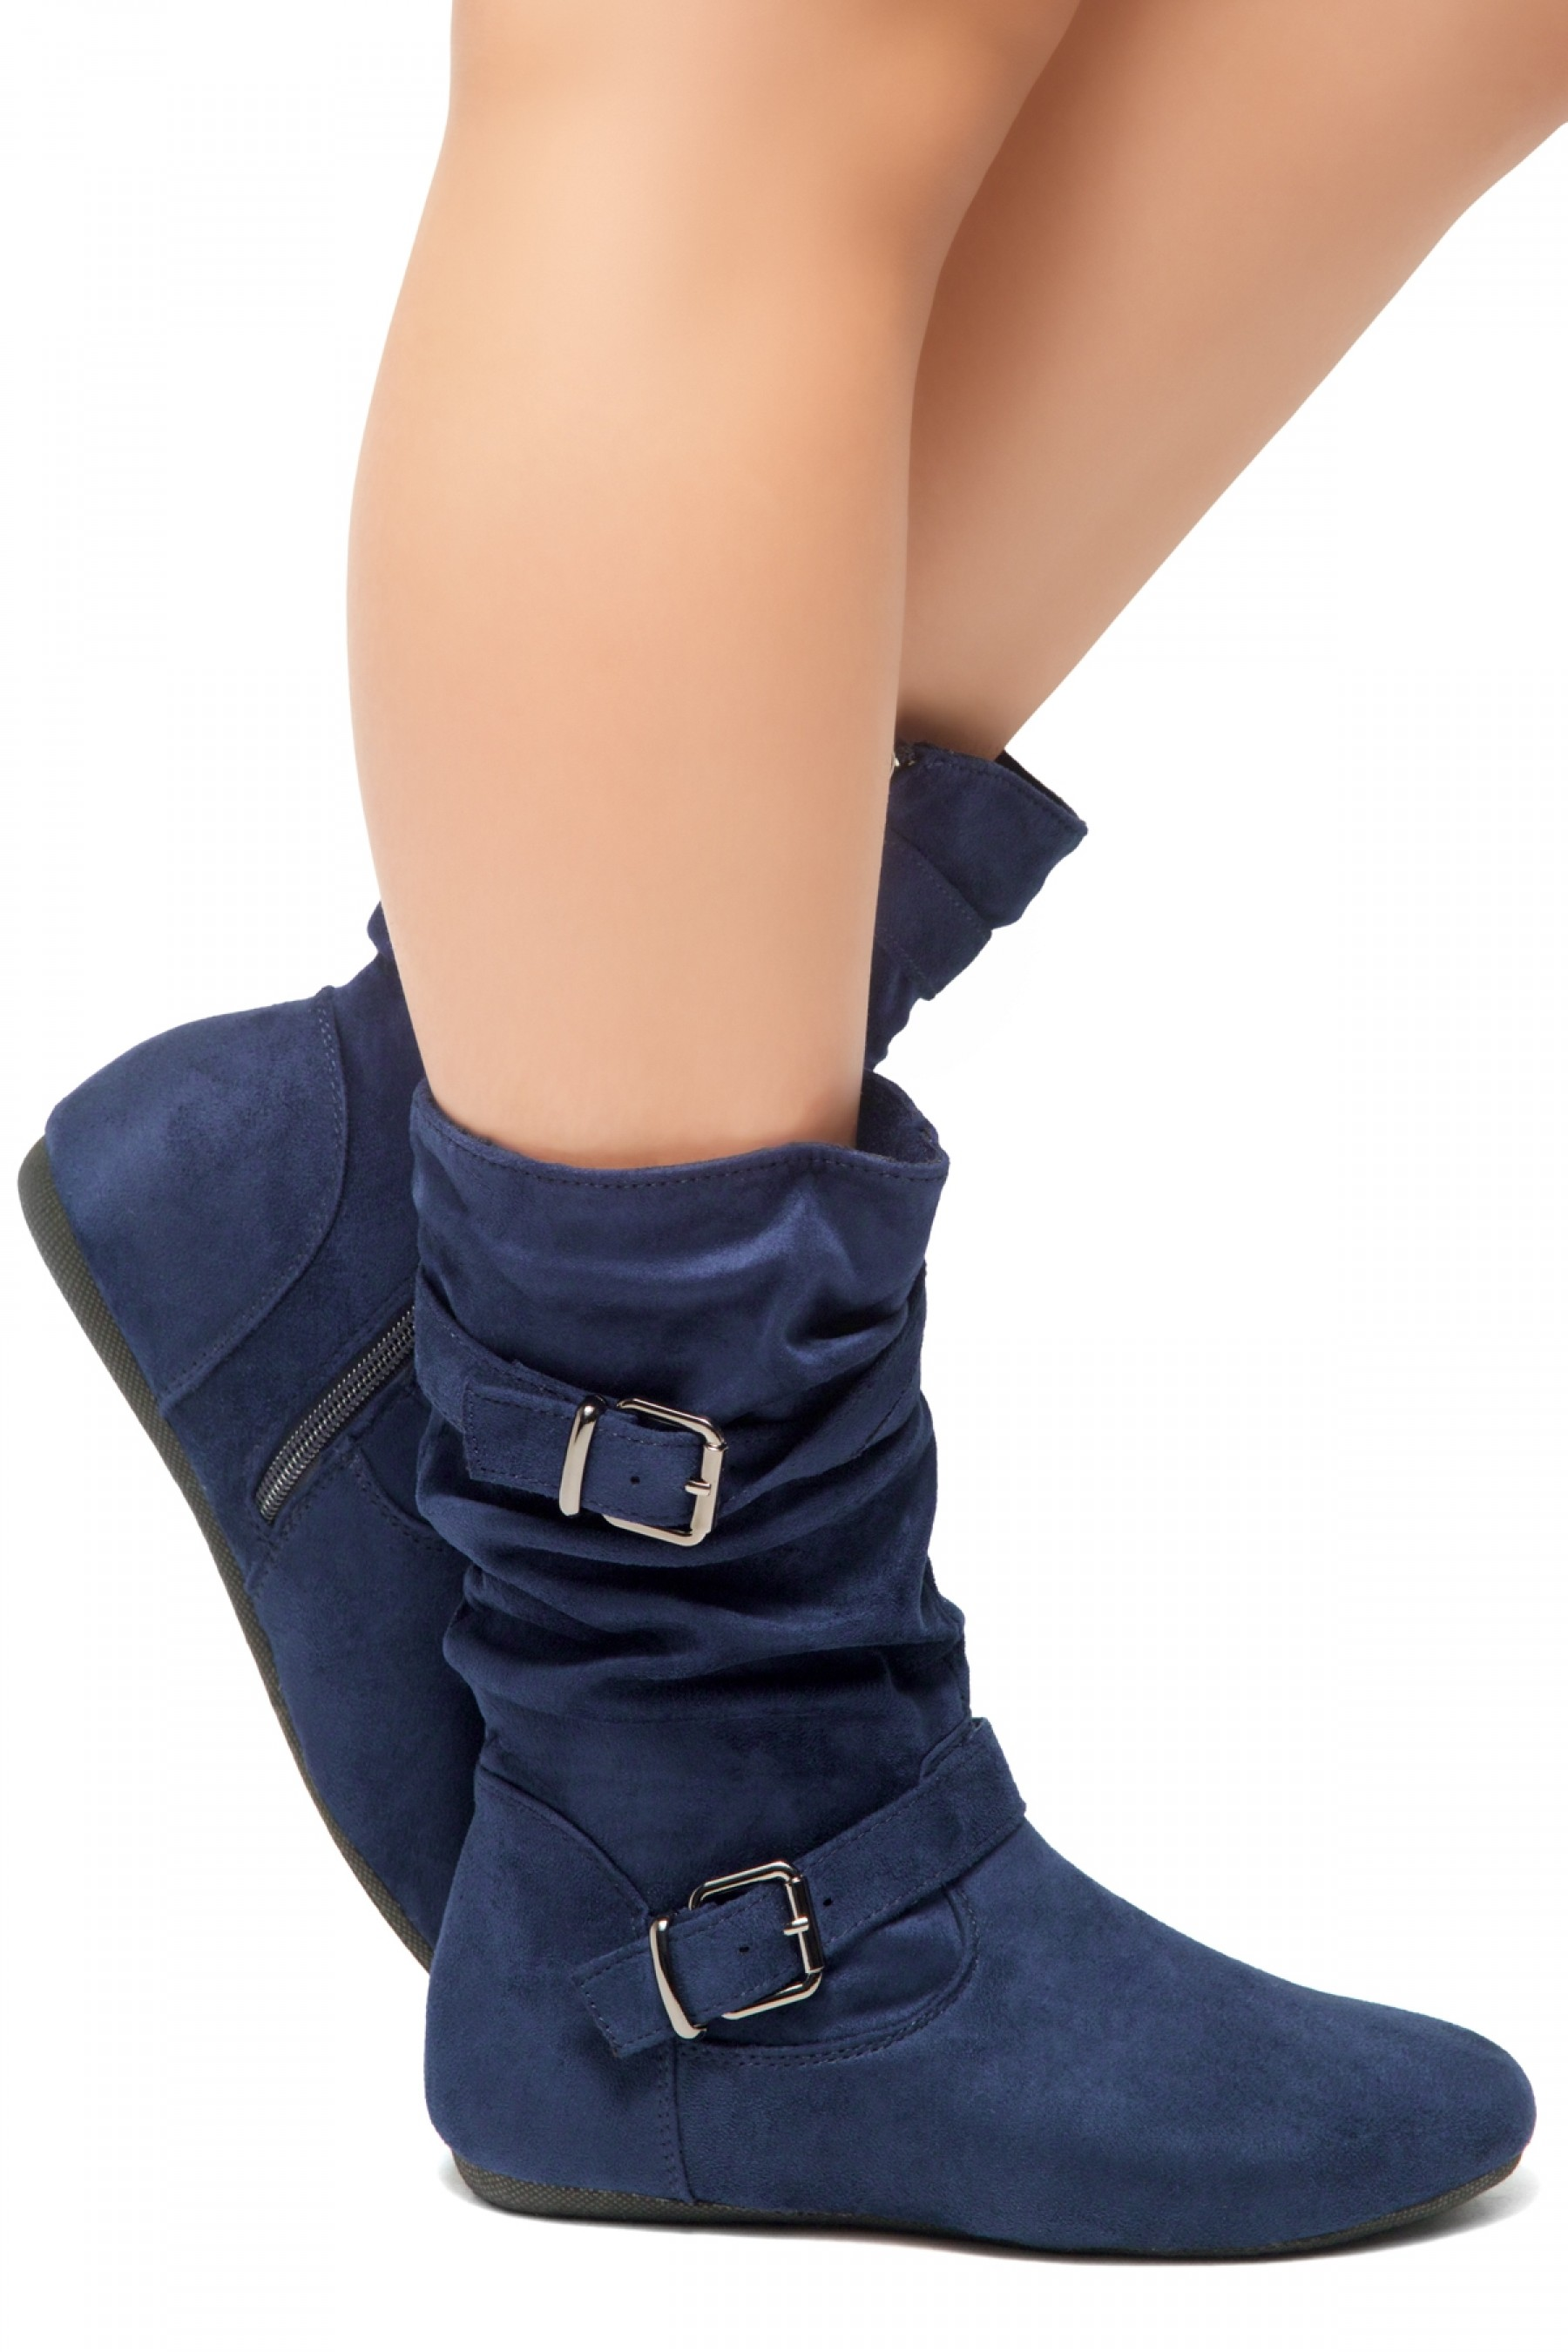 HerStyle Marvel-Round toe, stacked flat heel, buckle detail (Navy)